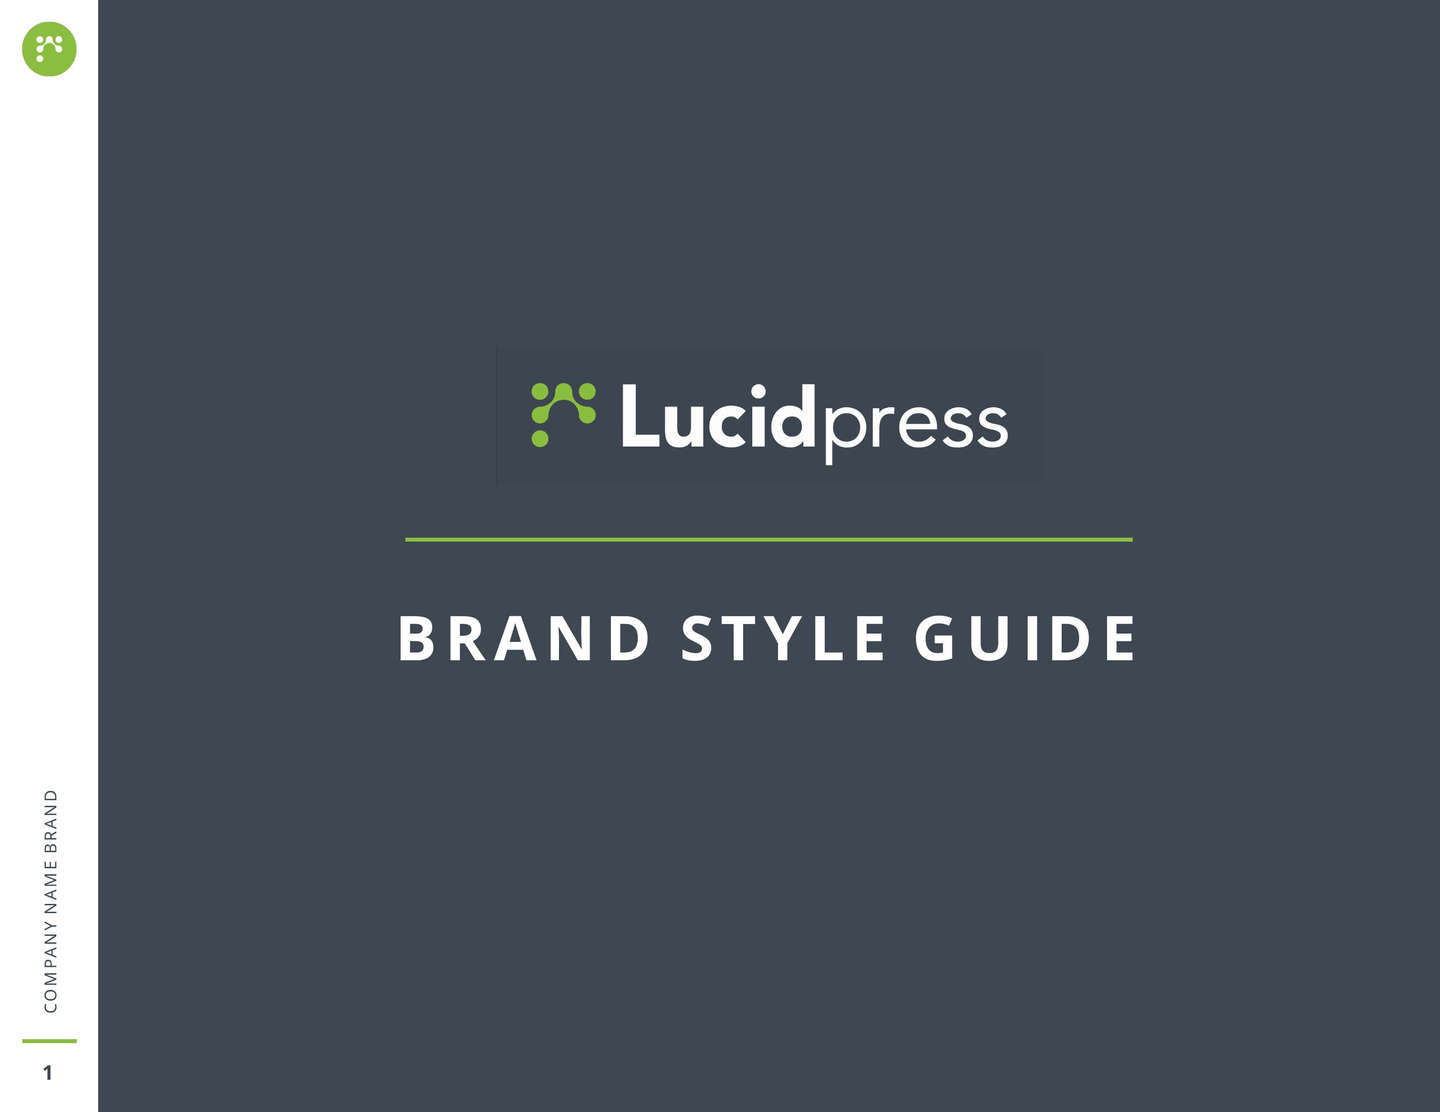 Free eBook Templates & Examples to Help Build Your Brand